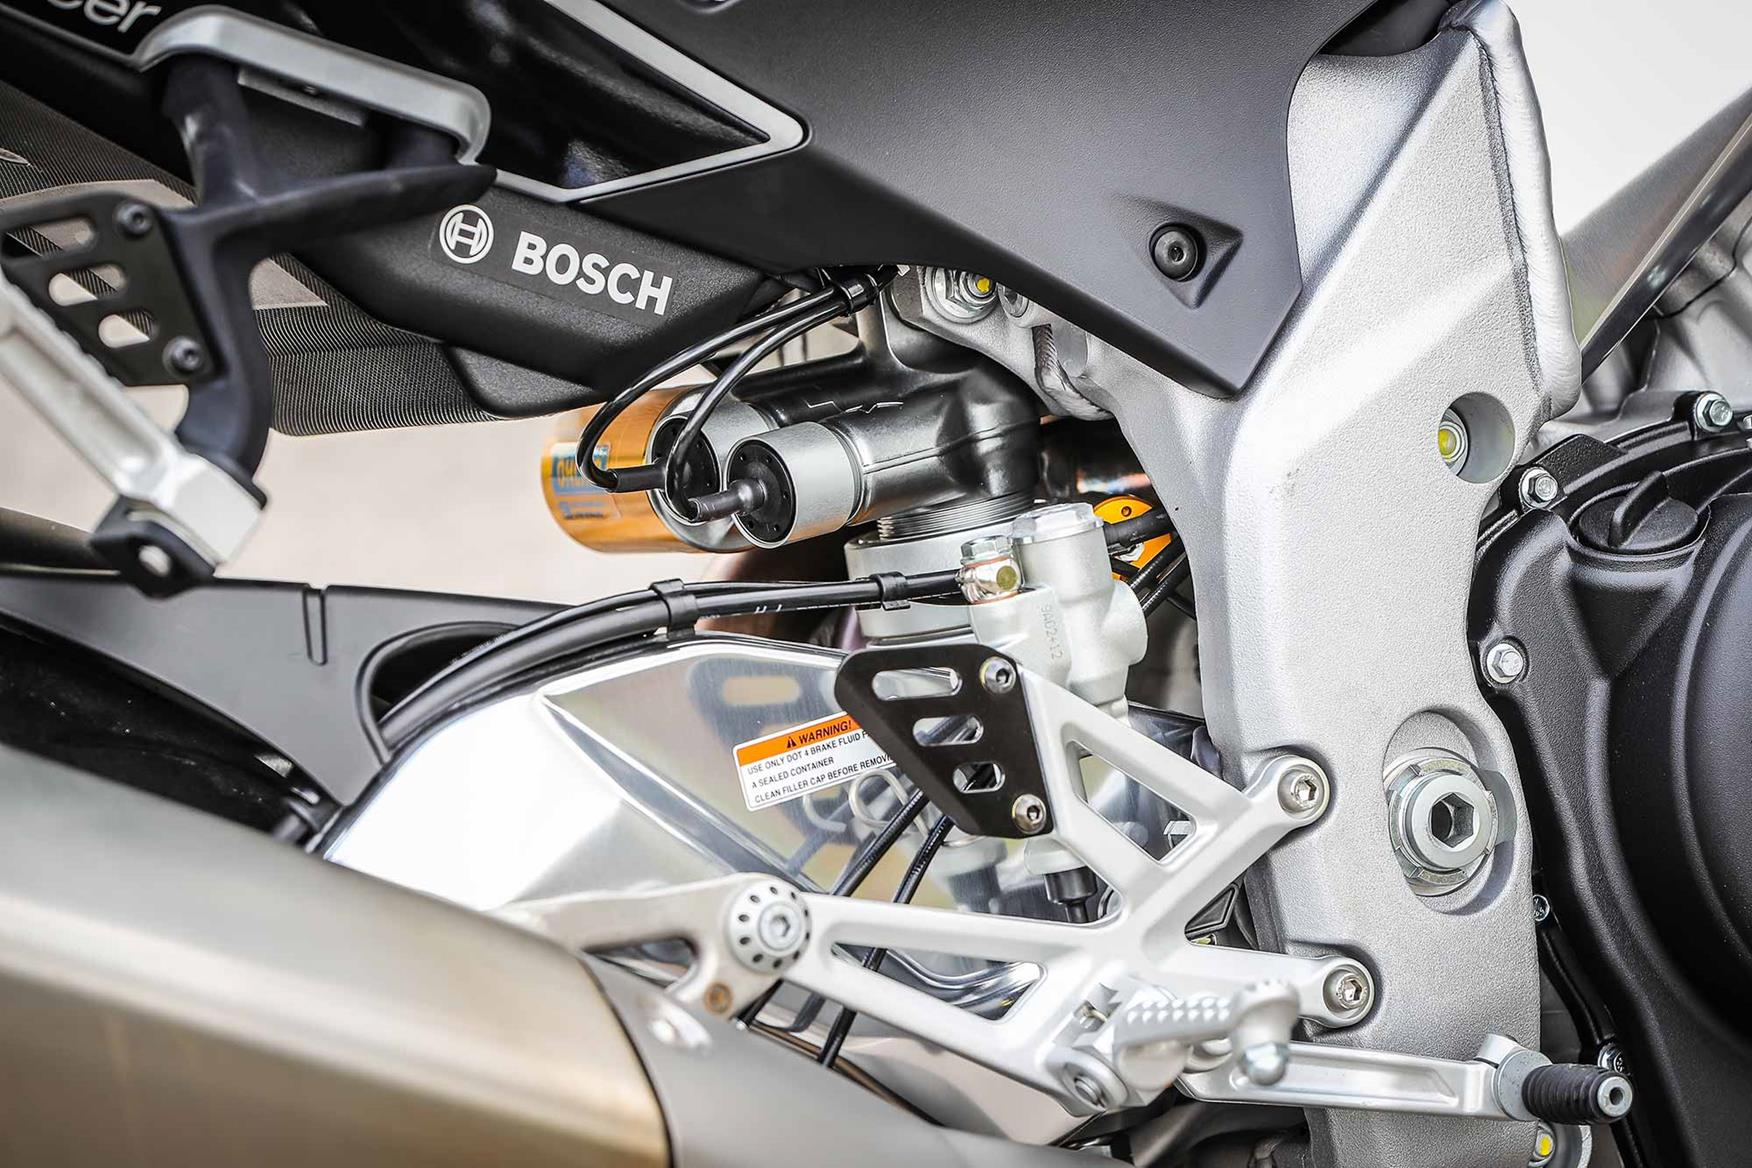 Electronically controlled suspension on the Aprilia Tuono V4 1100 Factory